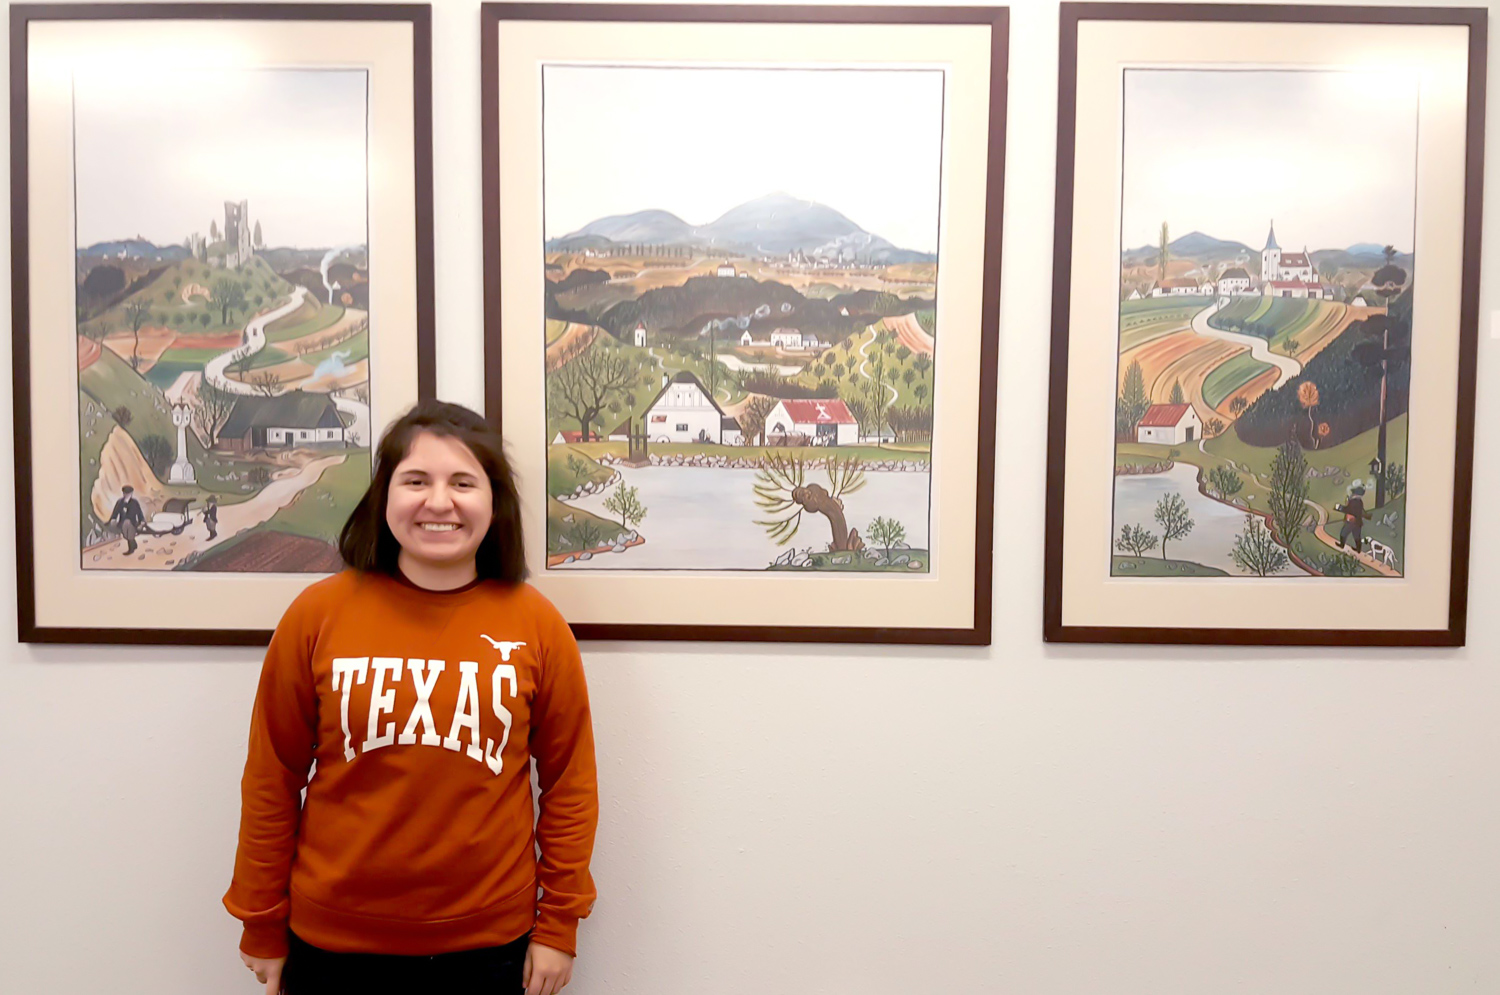 Celeste Banda stopped in to see the Josef A. Lada exhibit and catch up with staff.